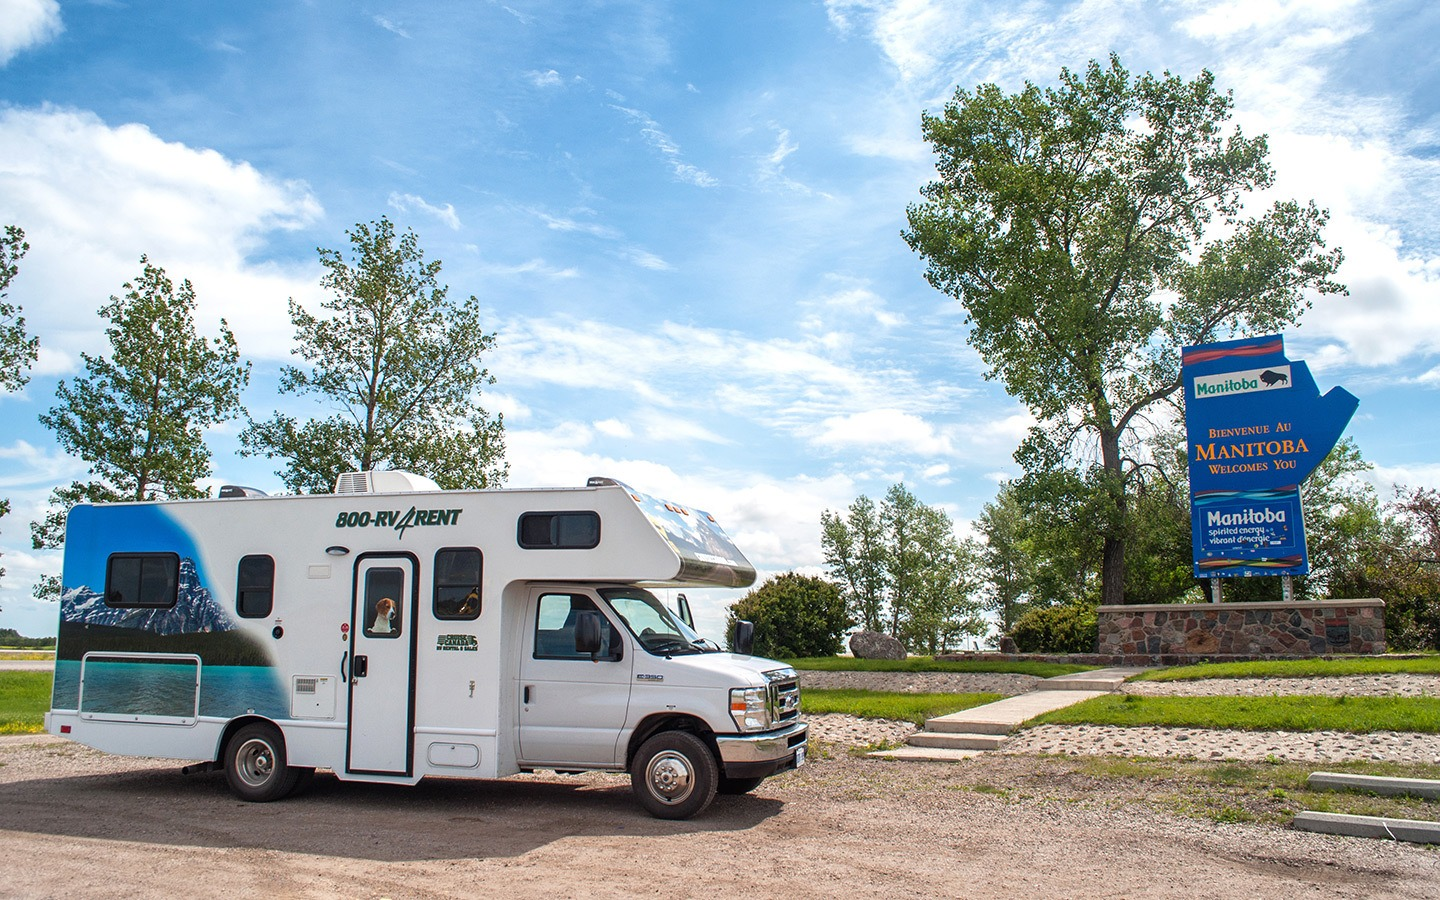 Crossing the Manitoba provincial line in an RV